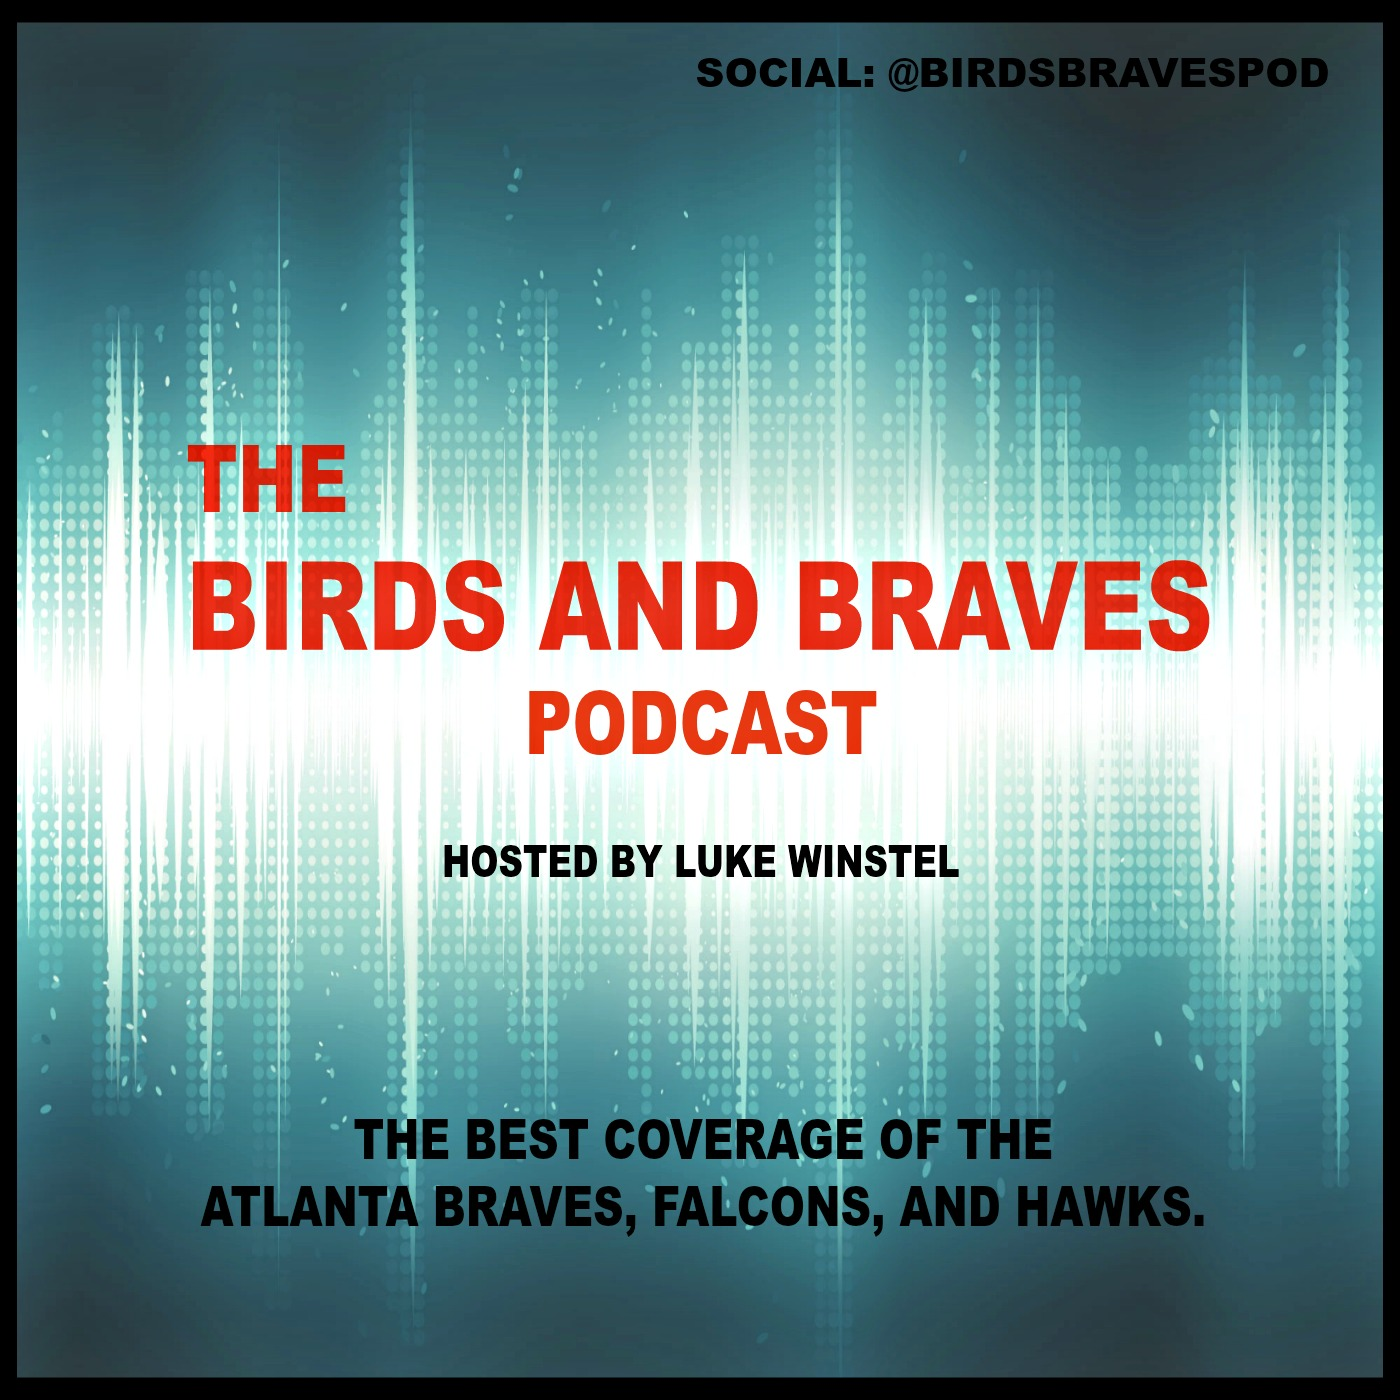 Birds and Braves Podcast